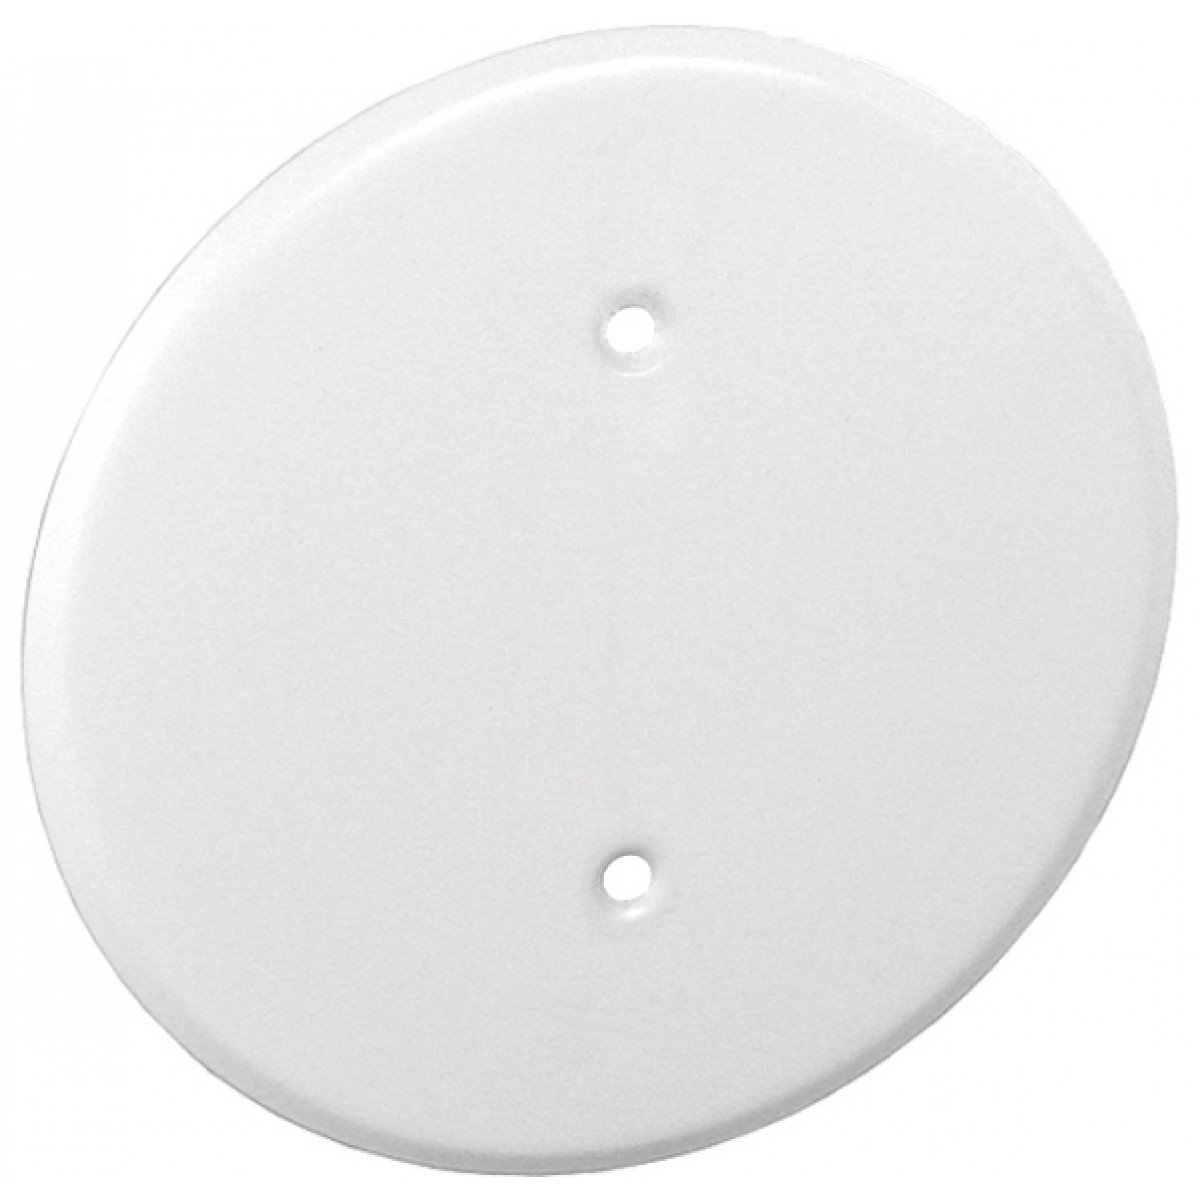 1 Pc, 8 In. Ceiling Blank-Up Cover, White, for Raised Ring Or 4 In. Round/Octagon Box, 0.0276 In Thick Steel to Cover Electrical Wires